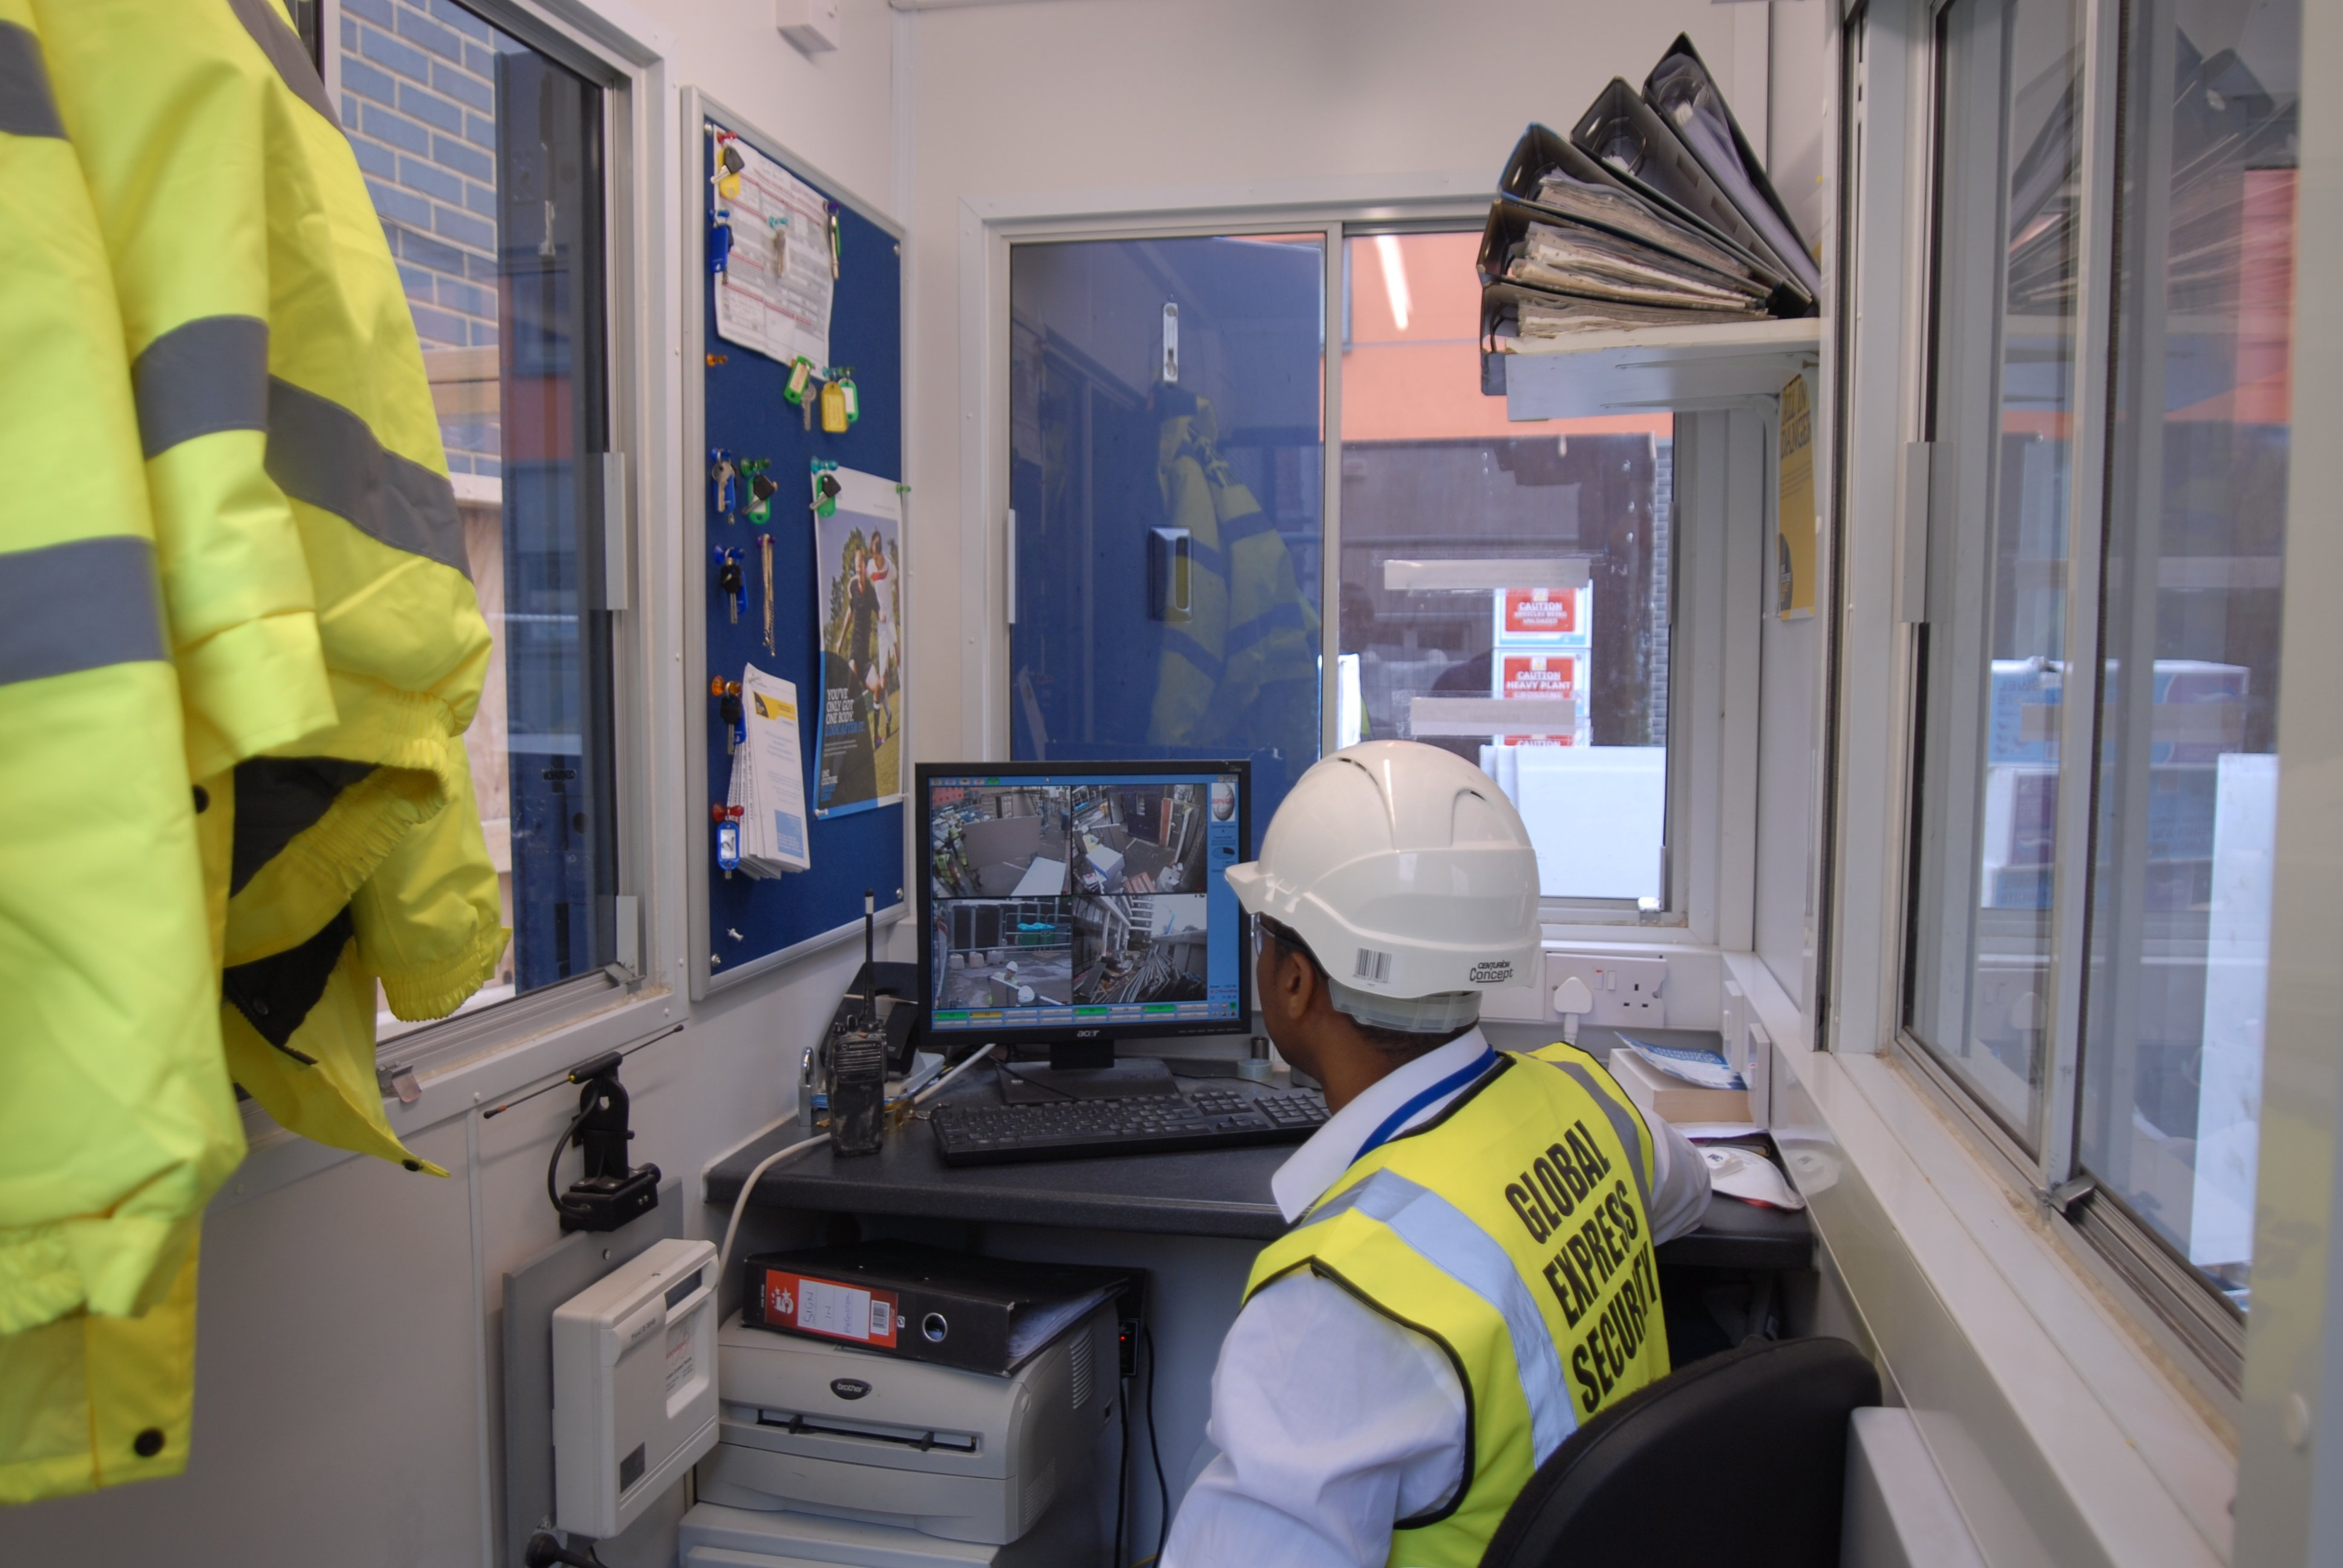 At work at Global Exoress Security Services Ltd